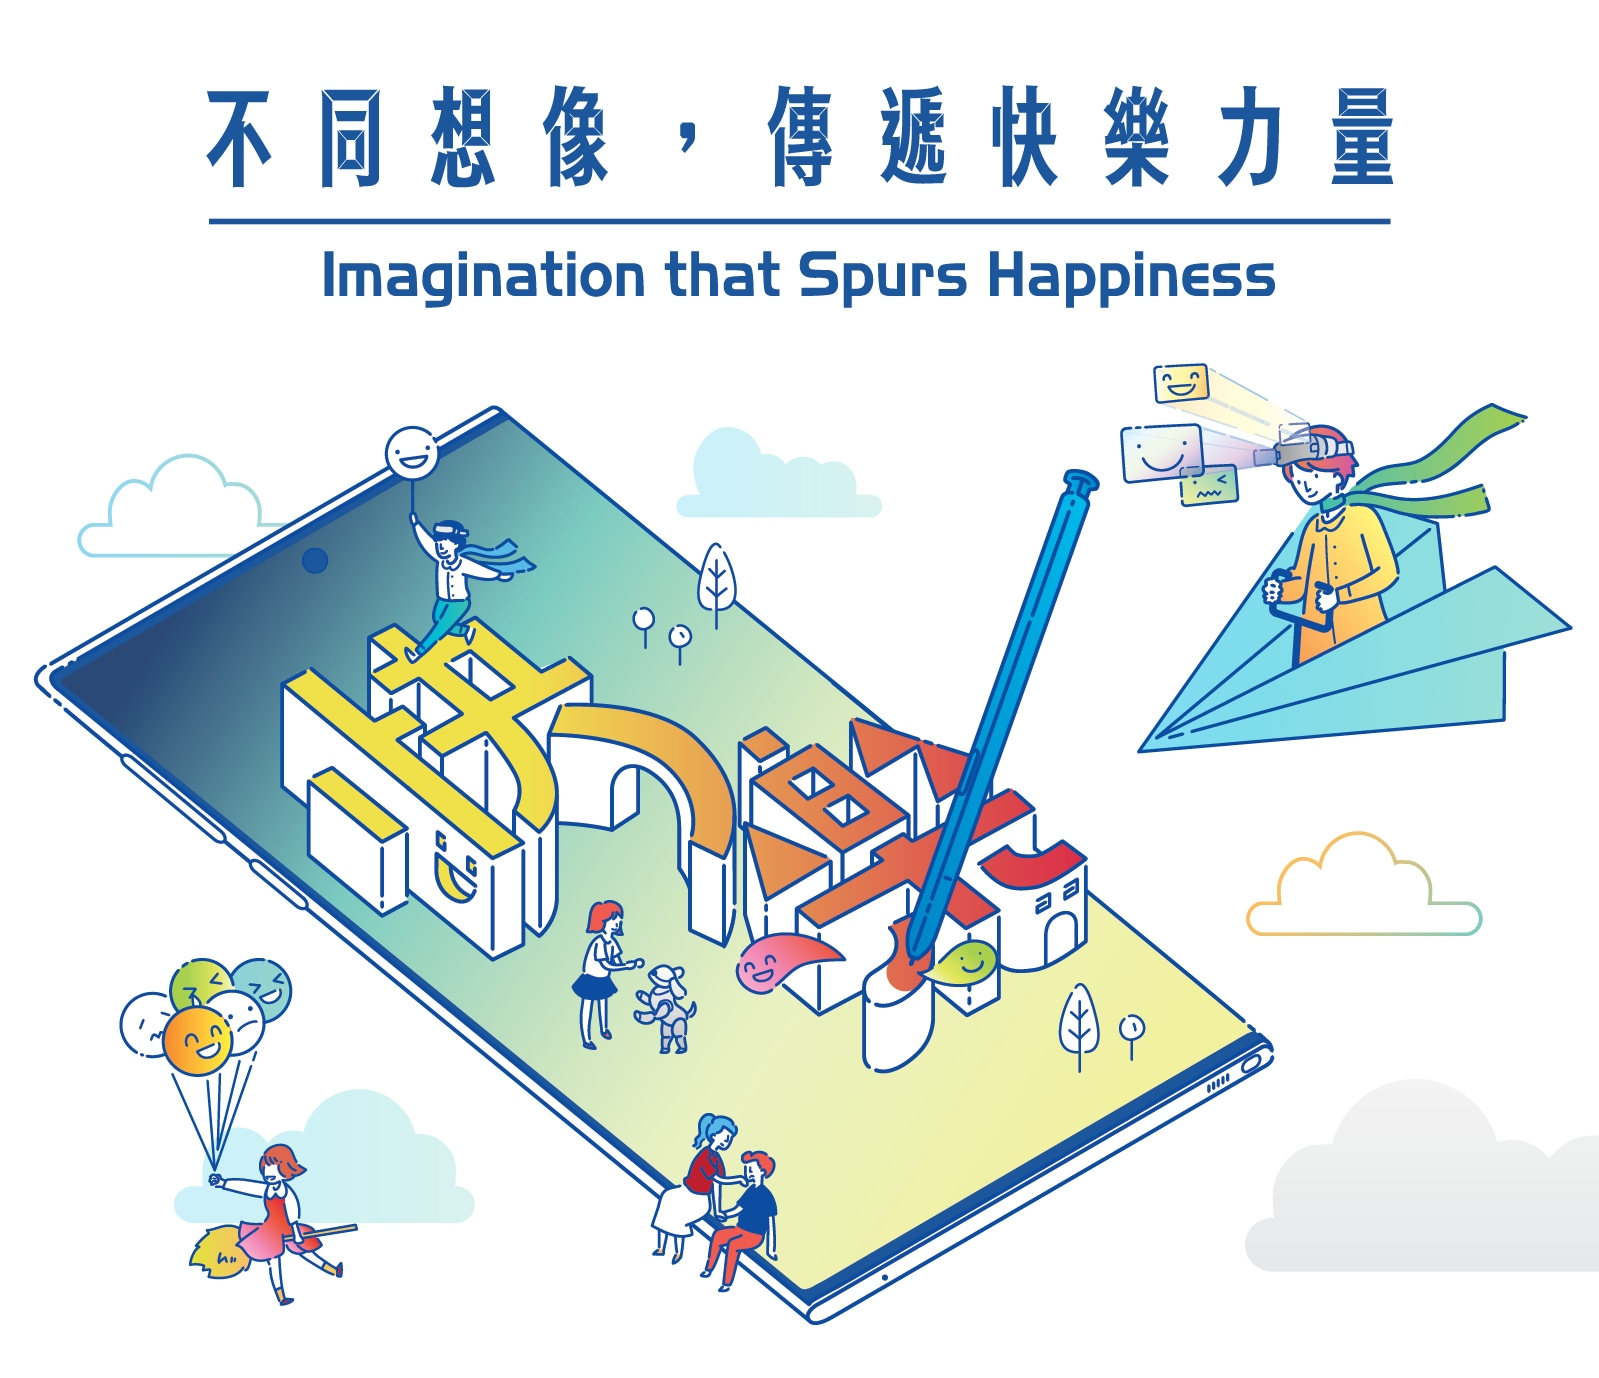 Imagination that Spurs Happiness